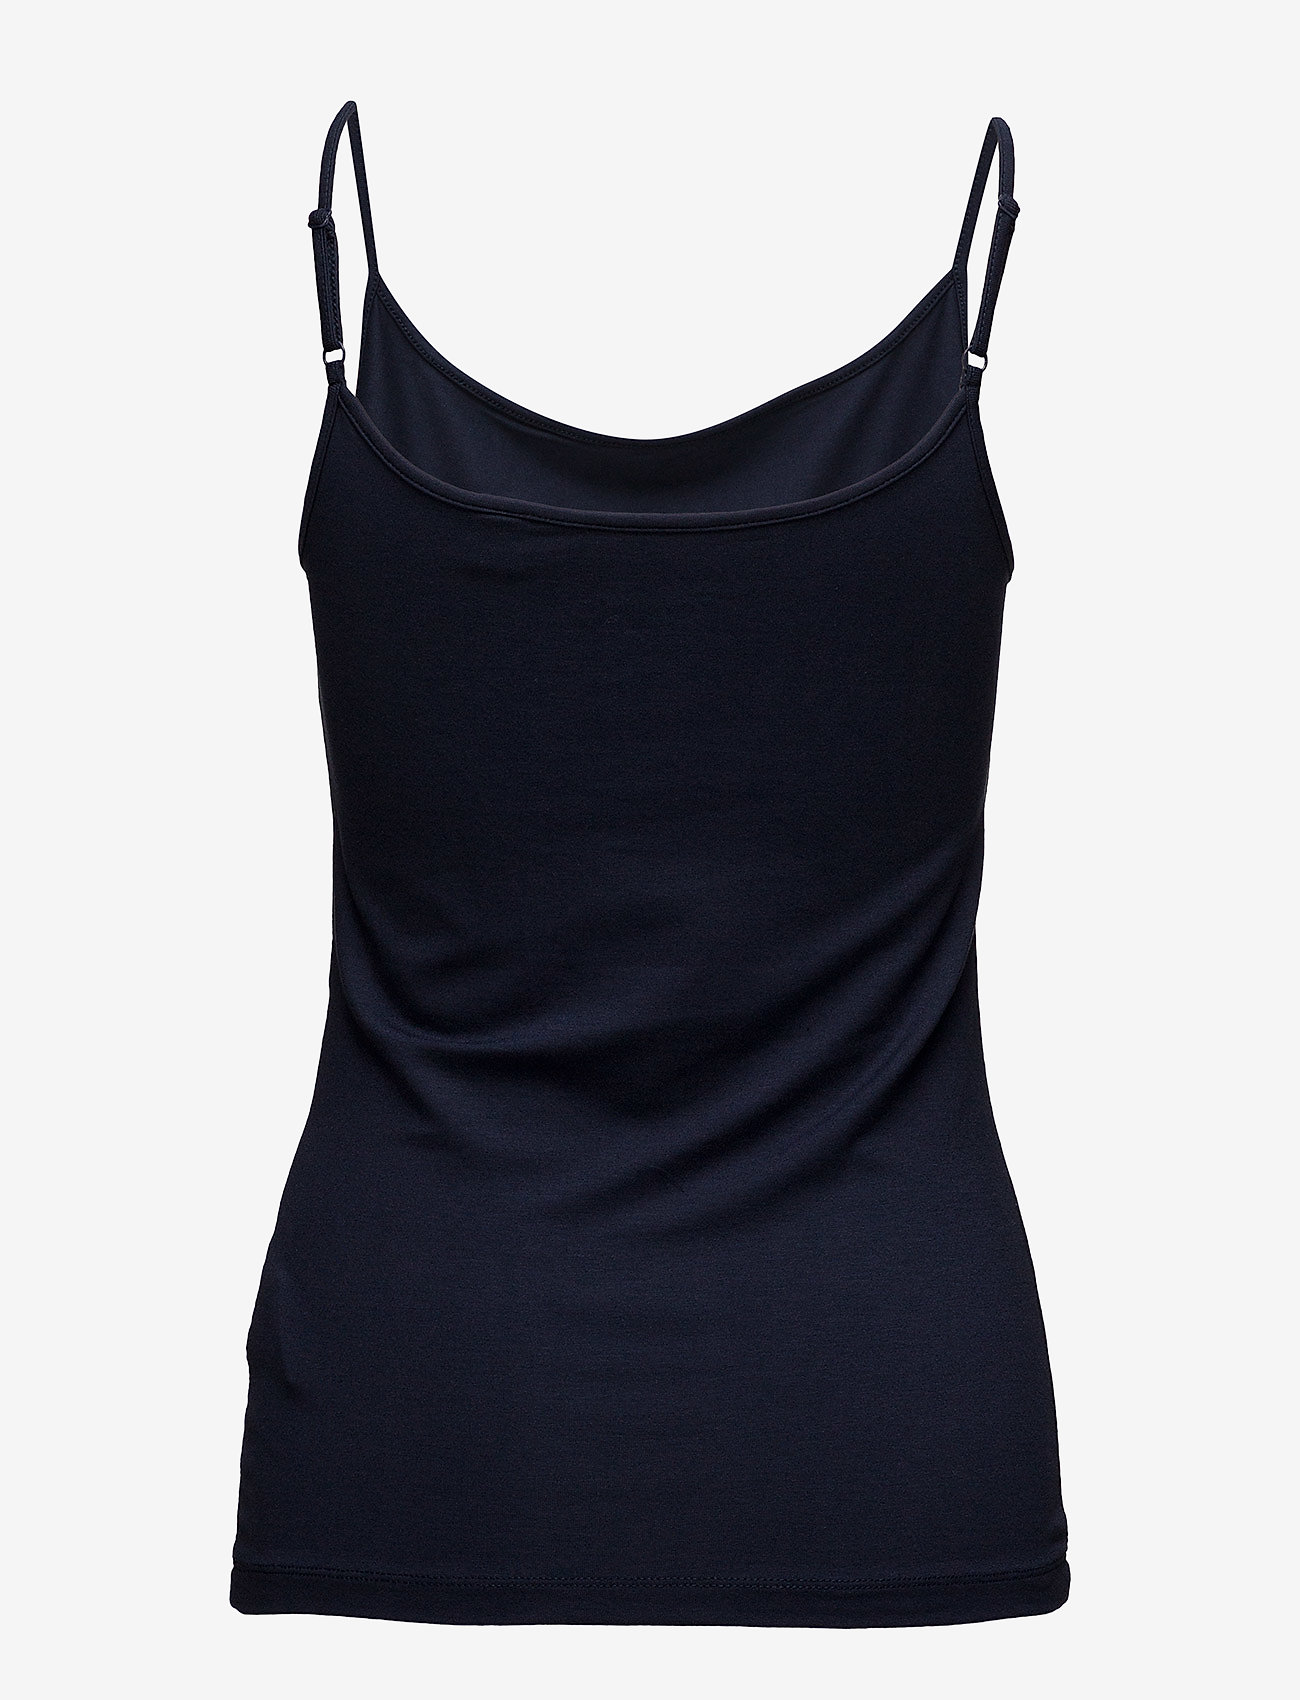 Esprit Casual - T-Shirts - sleeveless tops - navy - 1